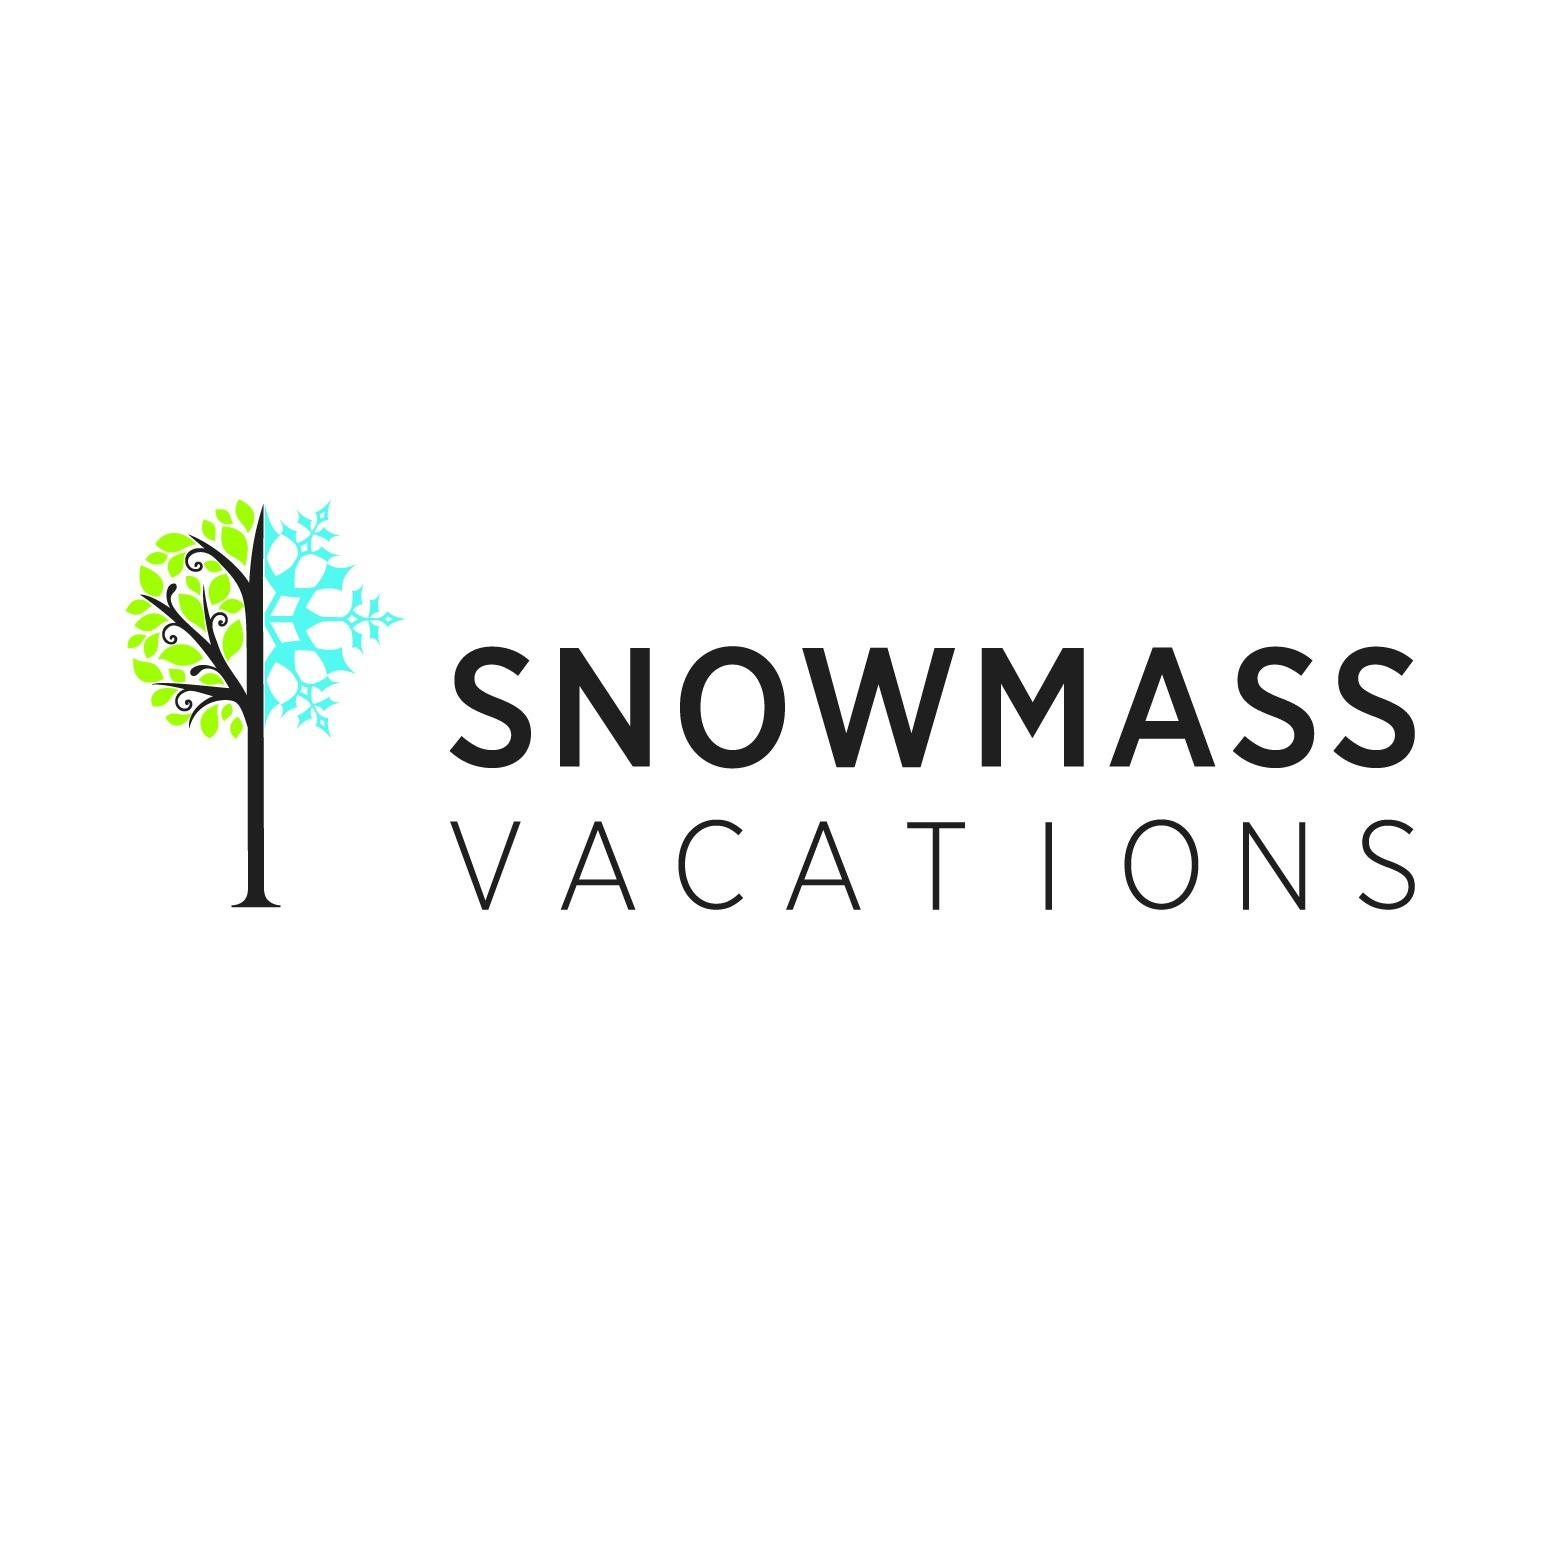 Snowmass Vacations